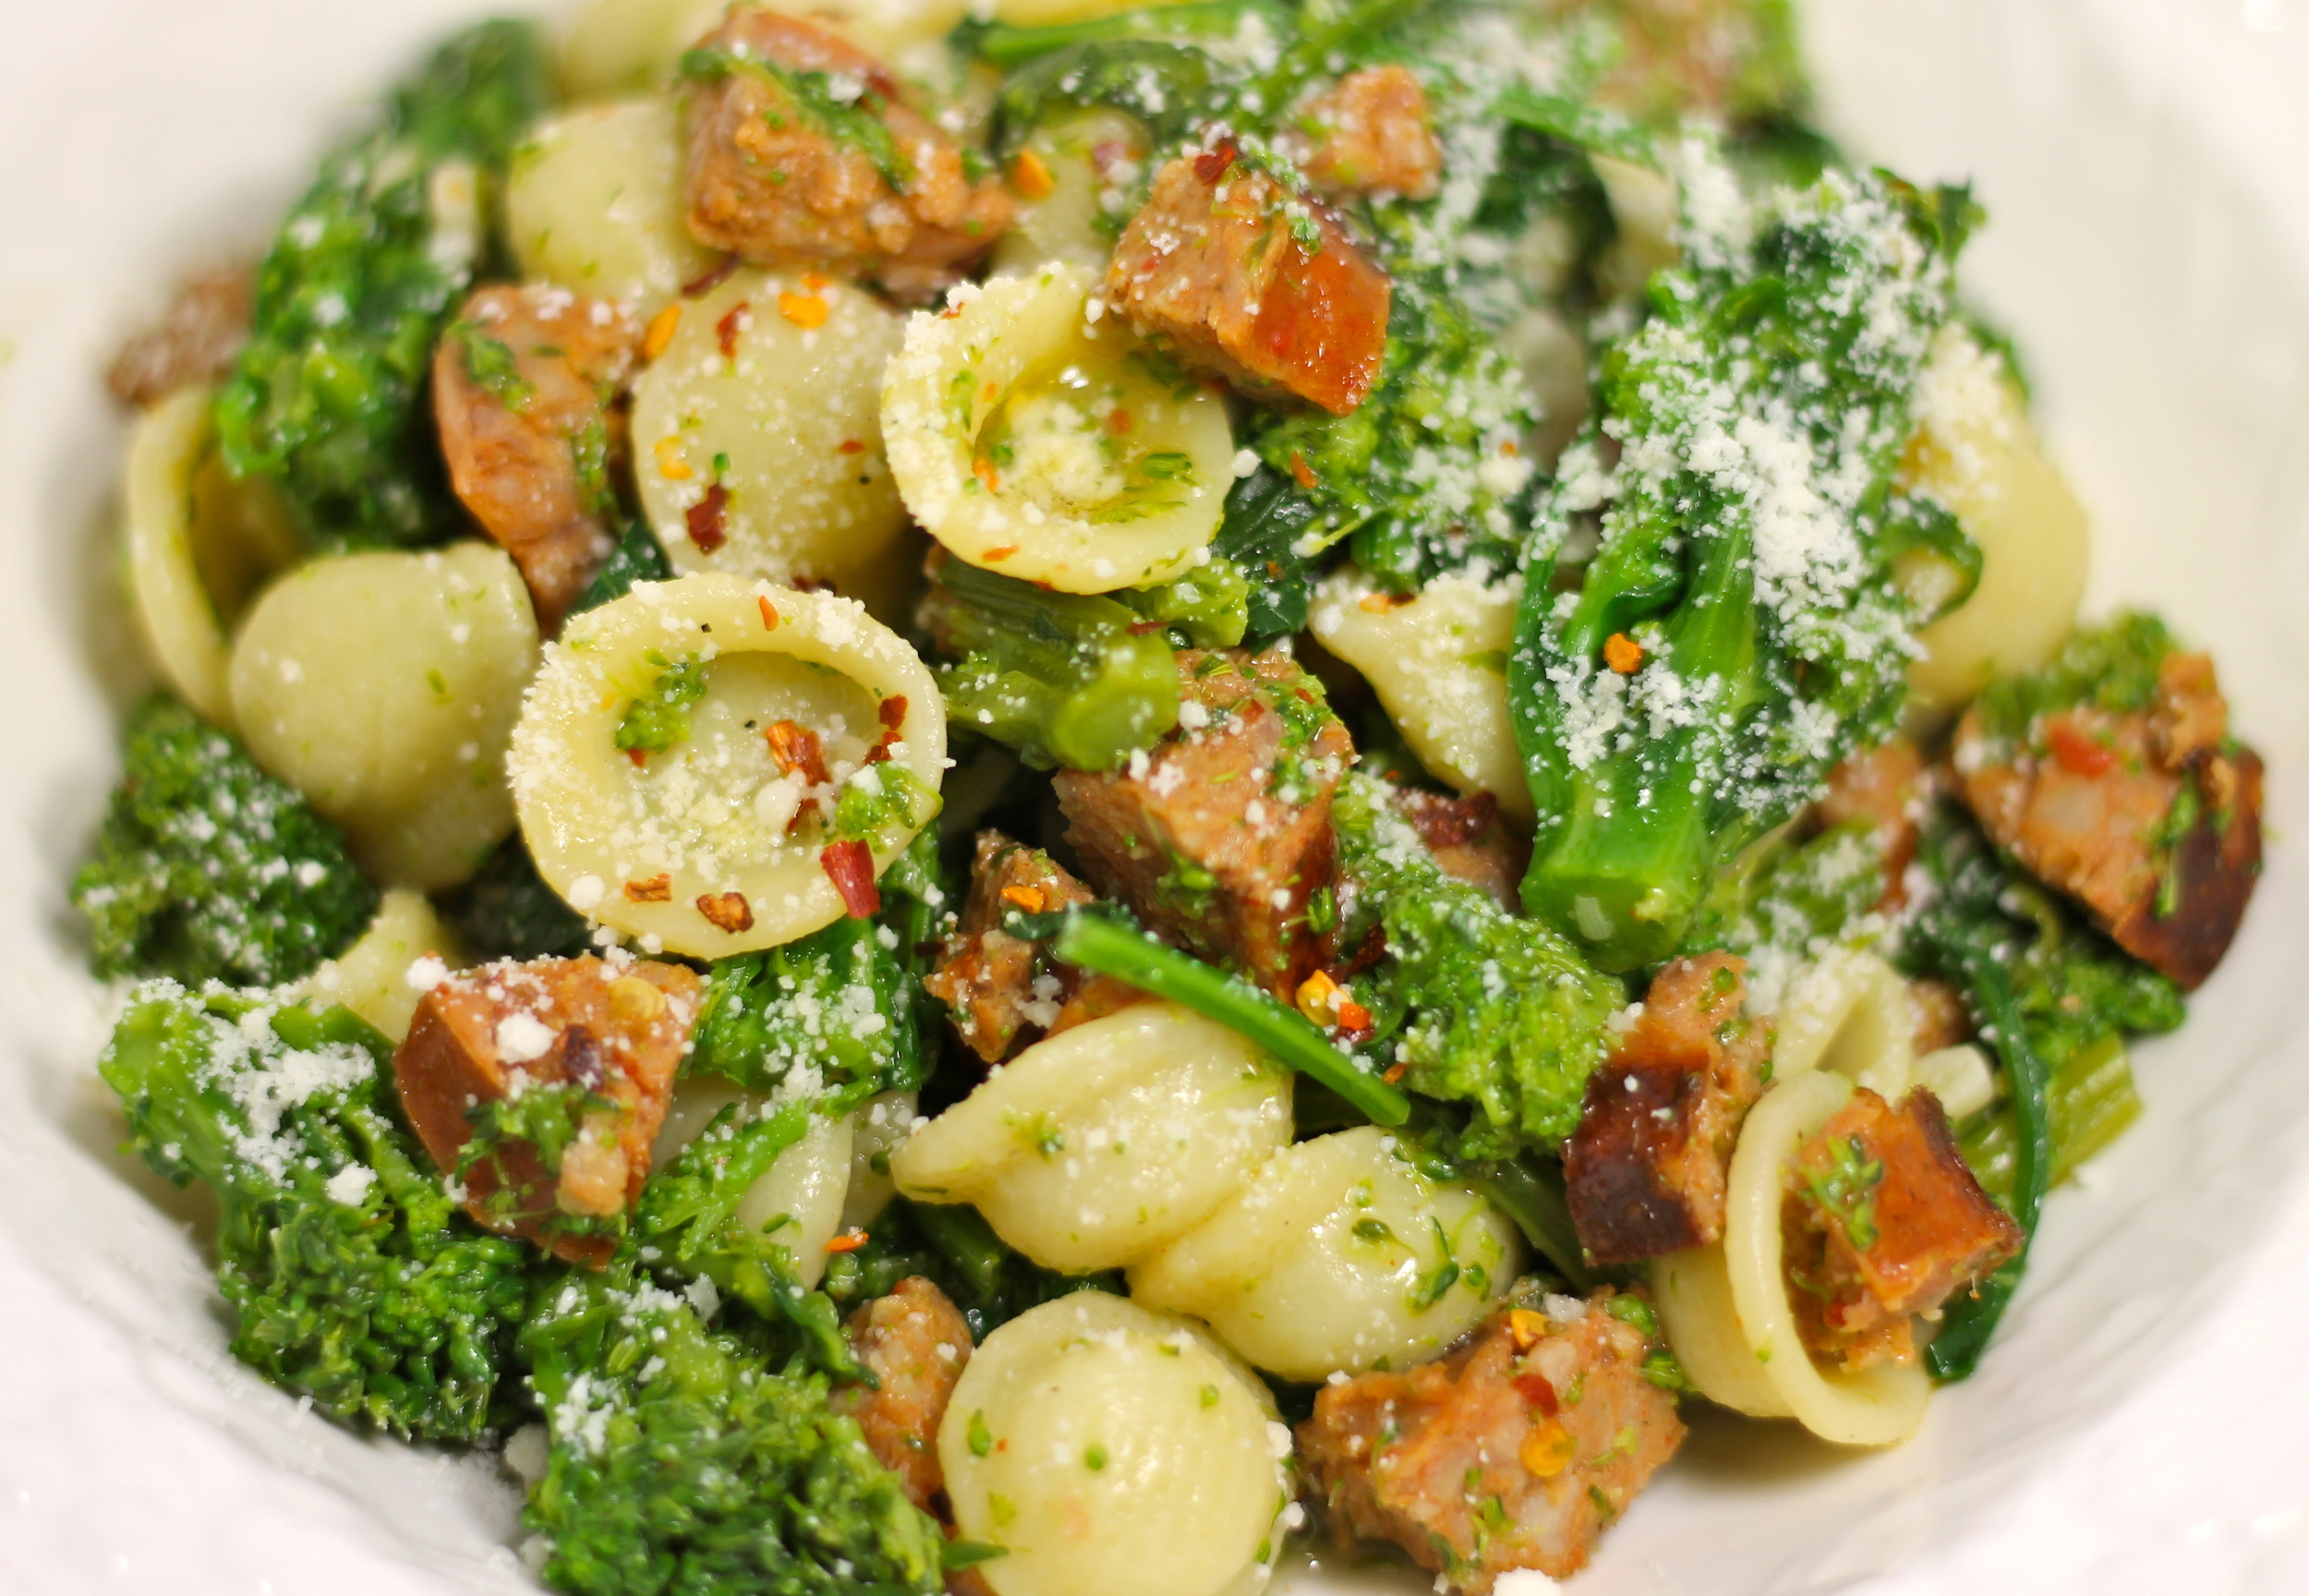 Brocoli Raab and Sausage Pasta